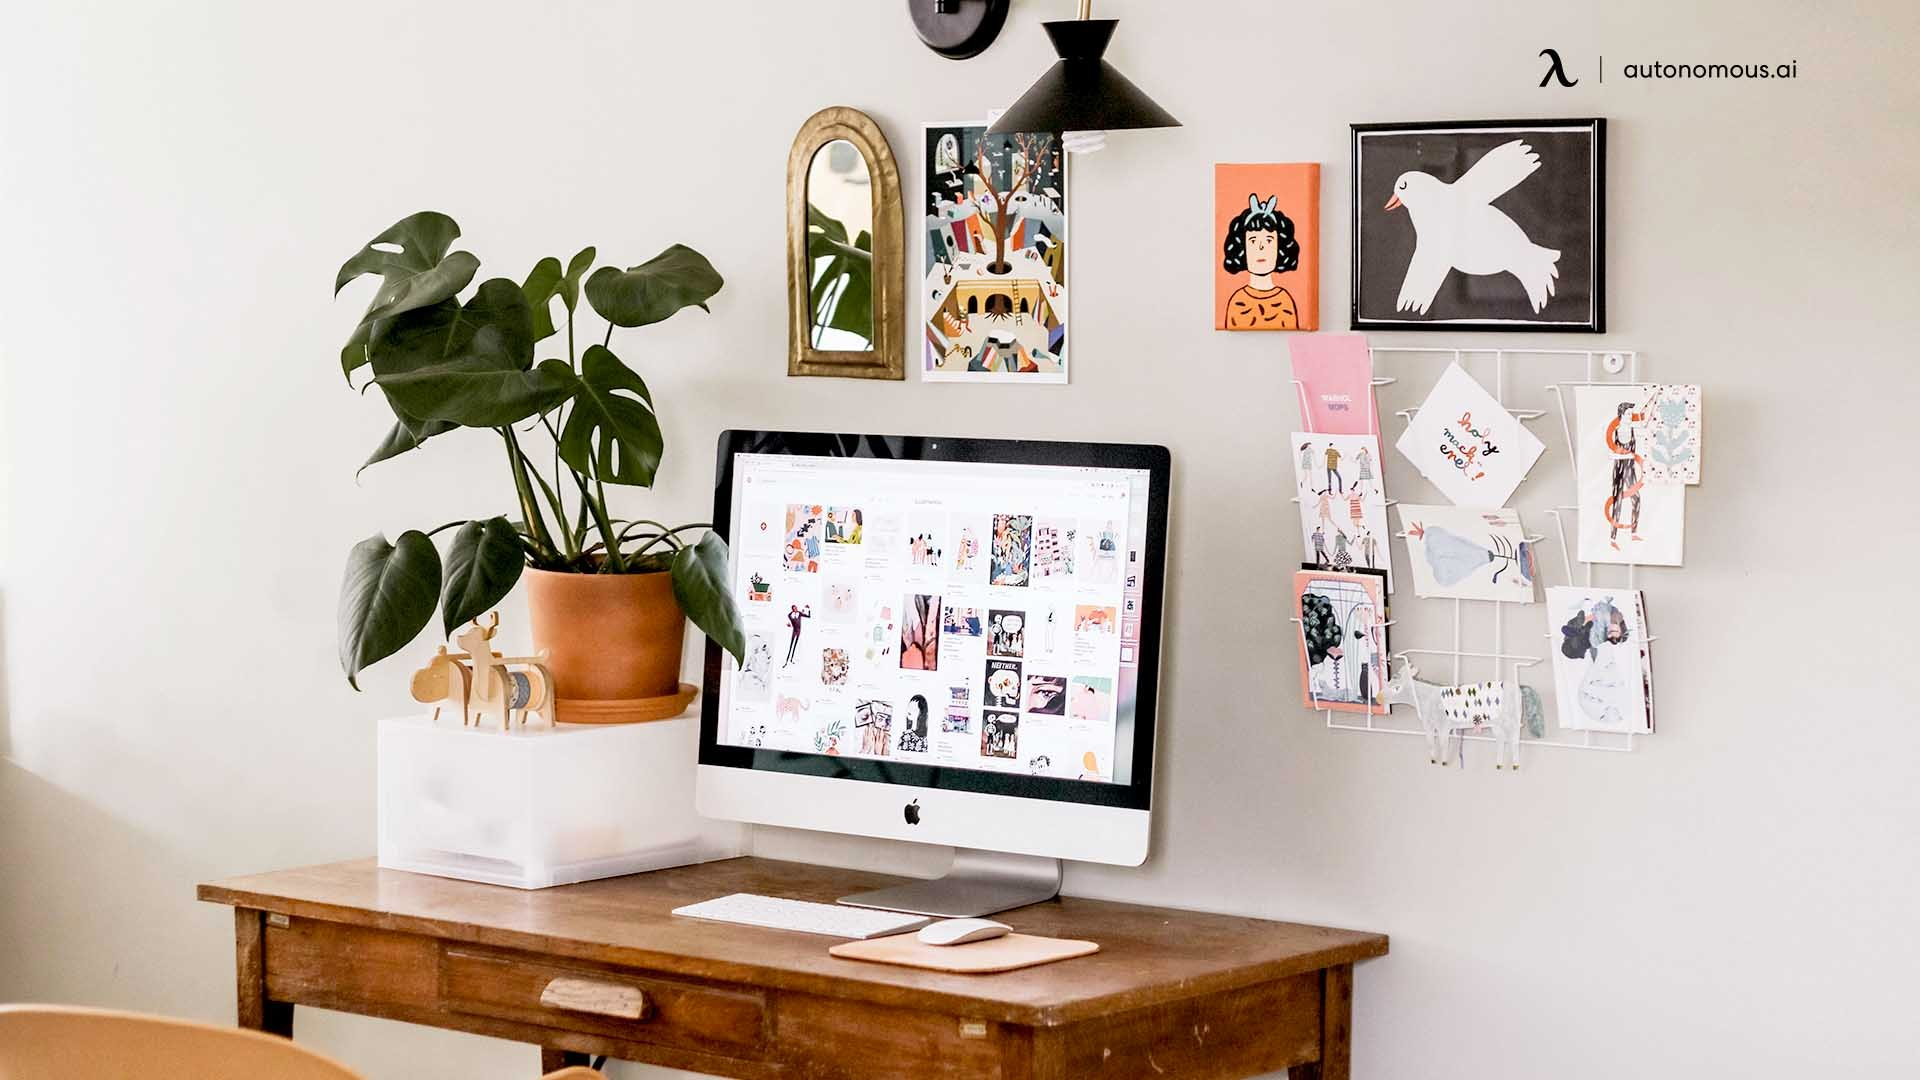 The Trendiest Office Wall Décor for a Creative and Productive Workspace